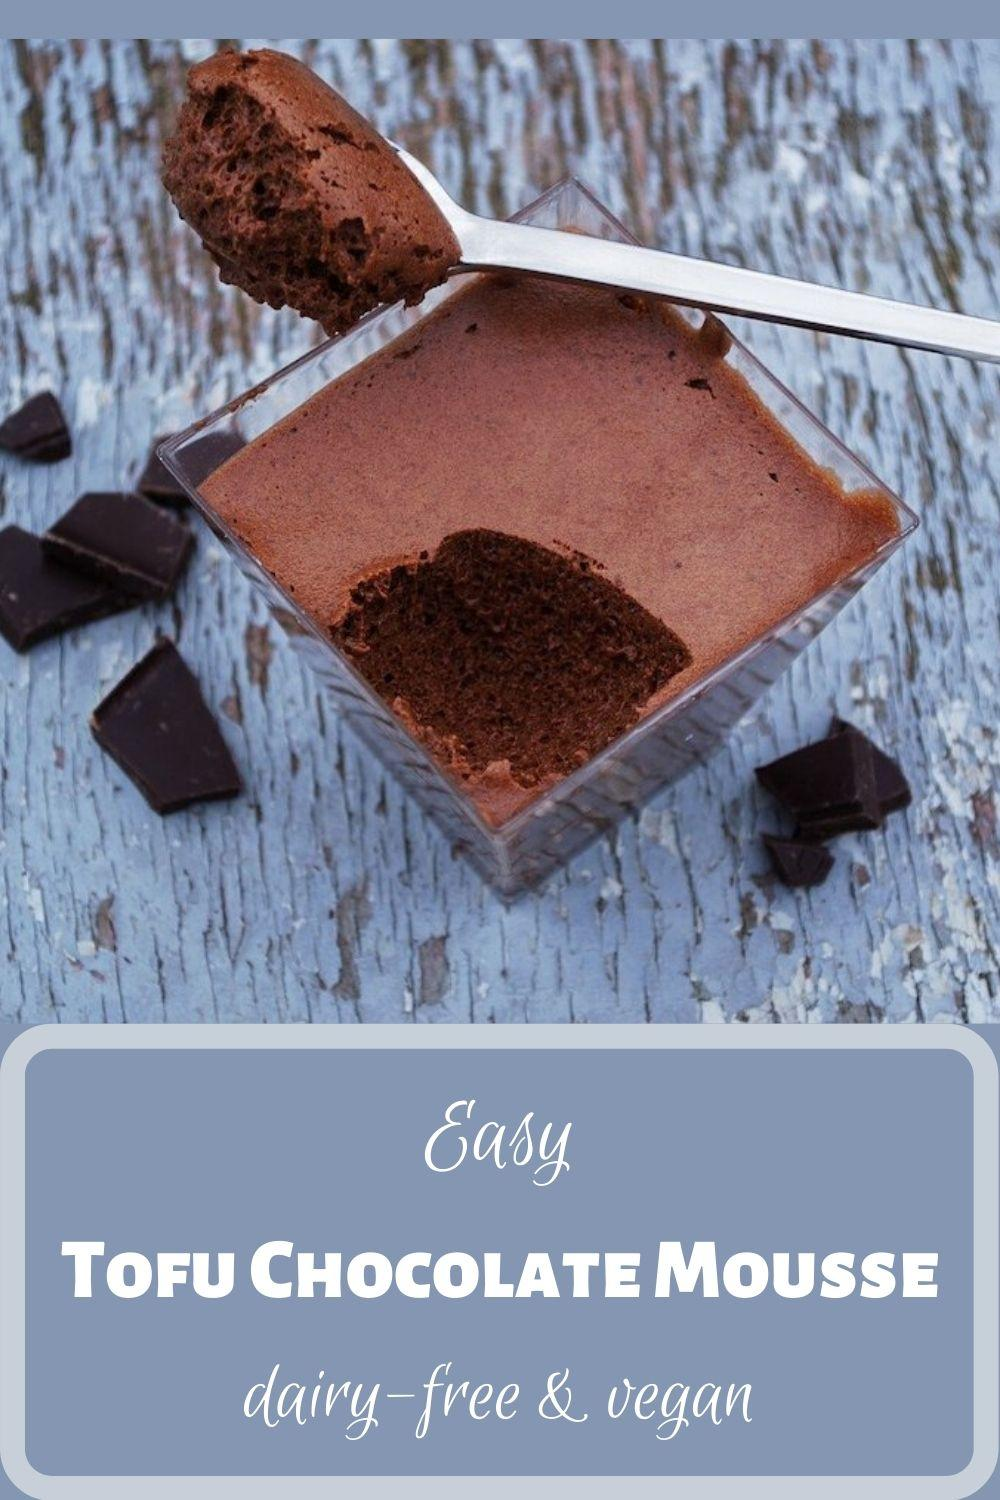 Easy Tofu Chocolate Mousse, dairy-free and vegan